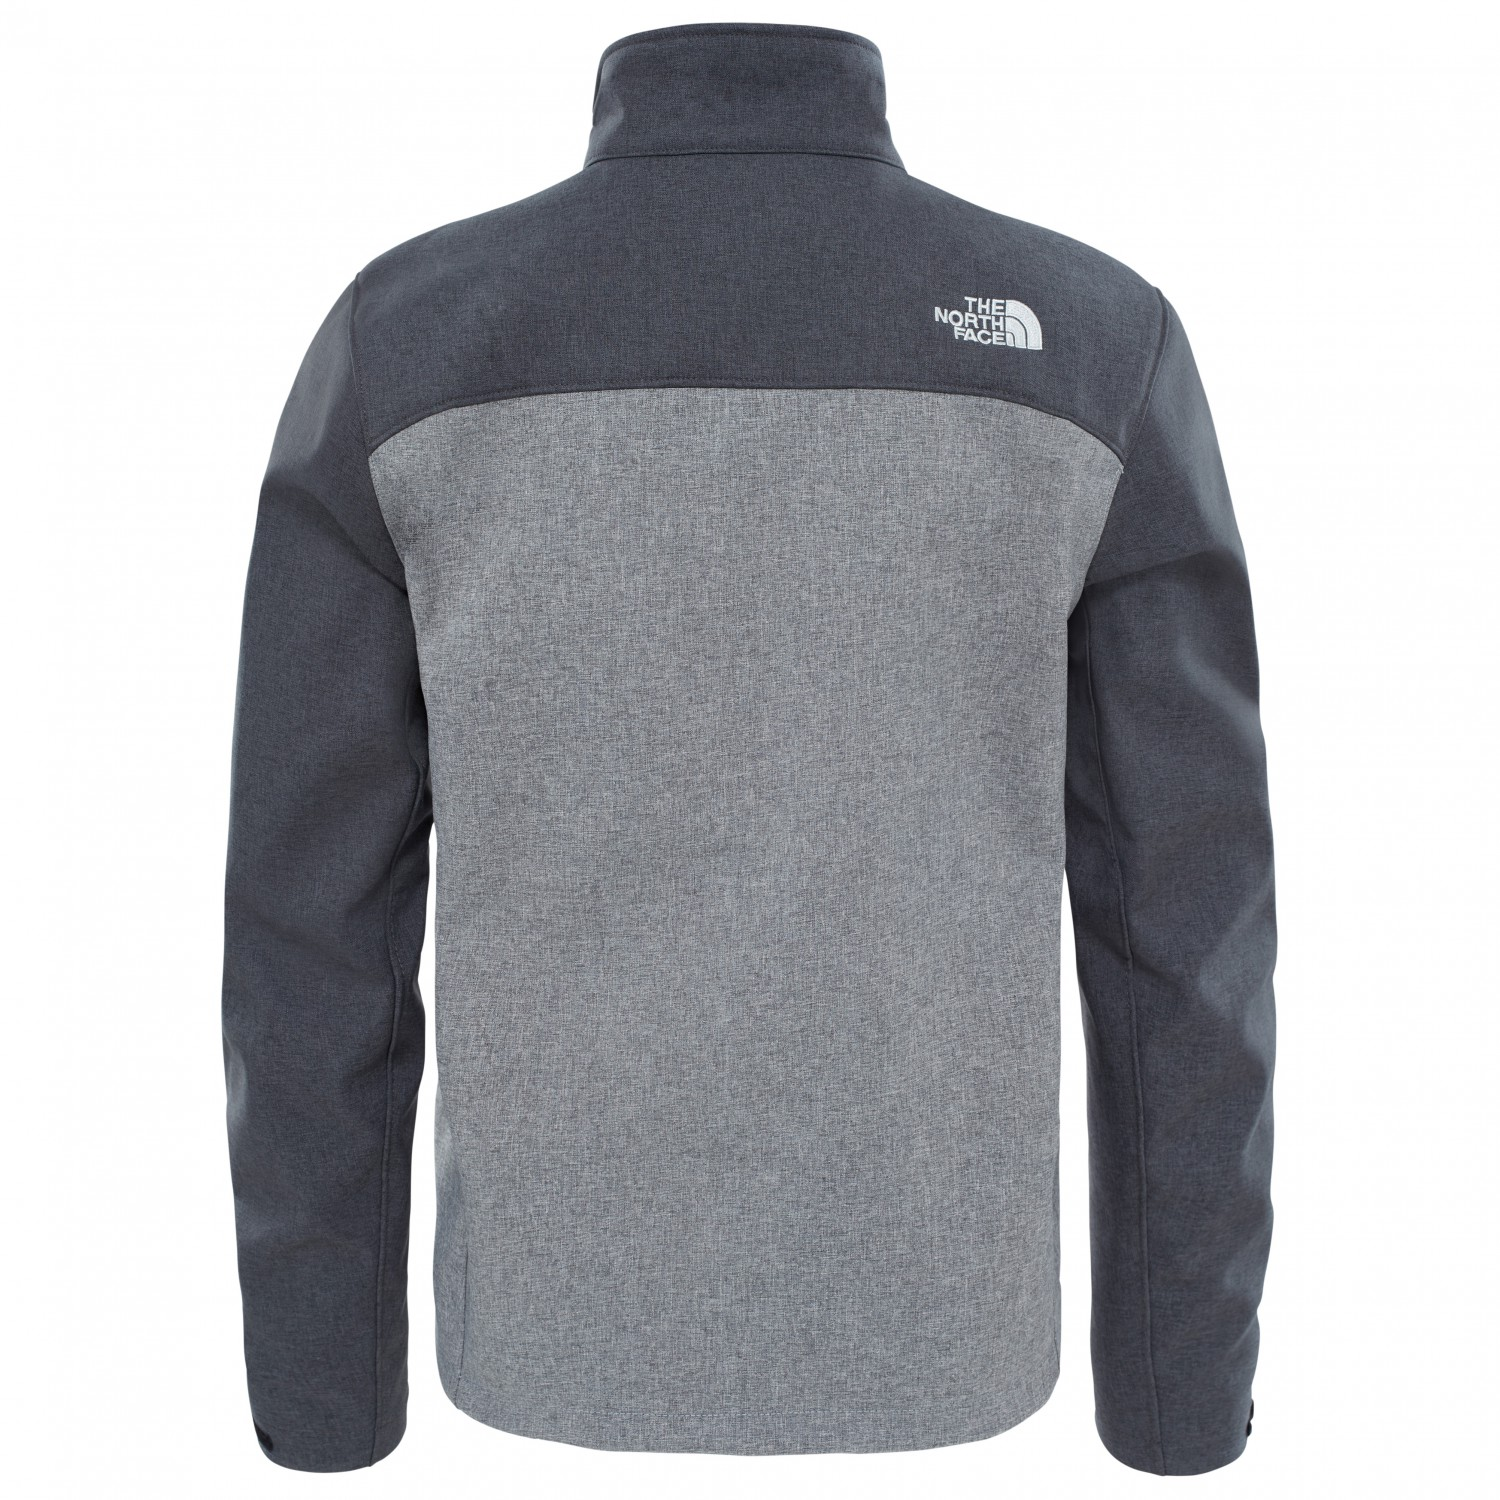 The North Face Apex Bionic Jacket Softshelljakke